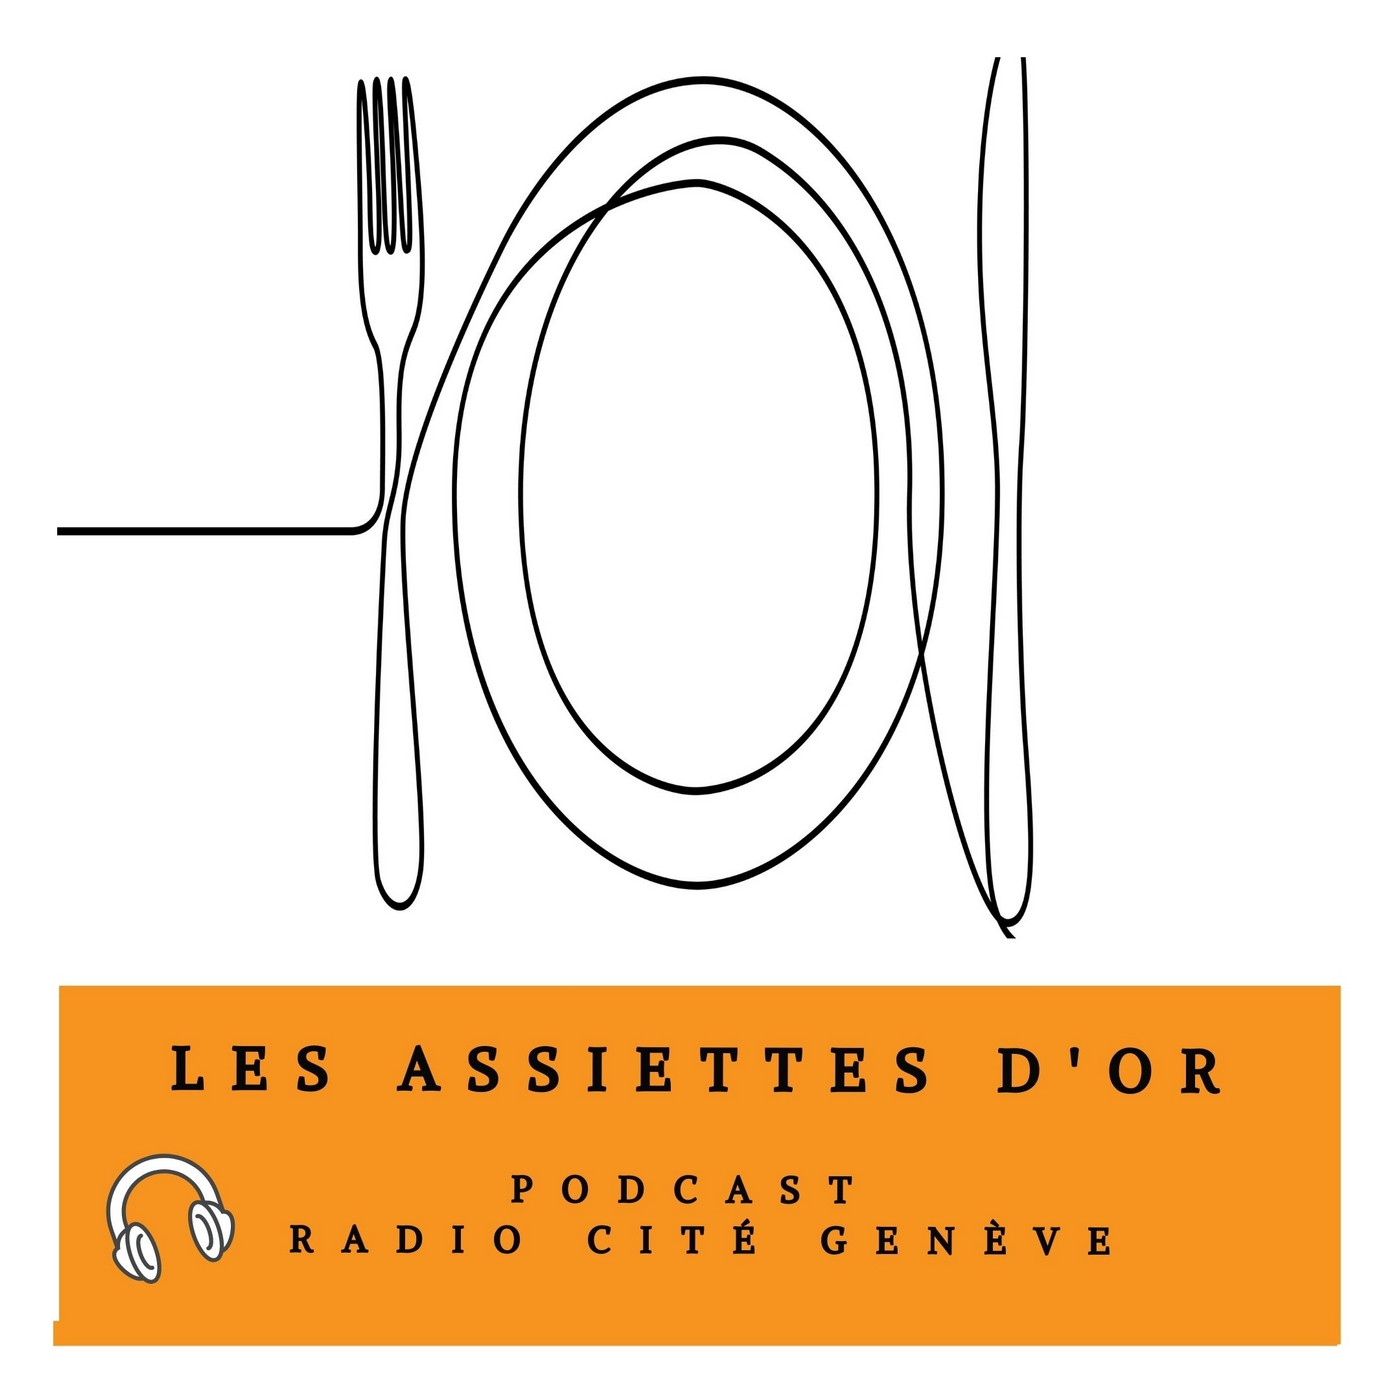 Les assiettes d'or - 16/09/2020